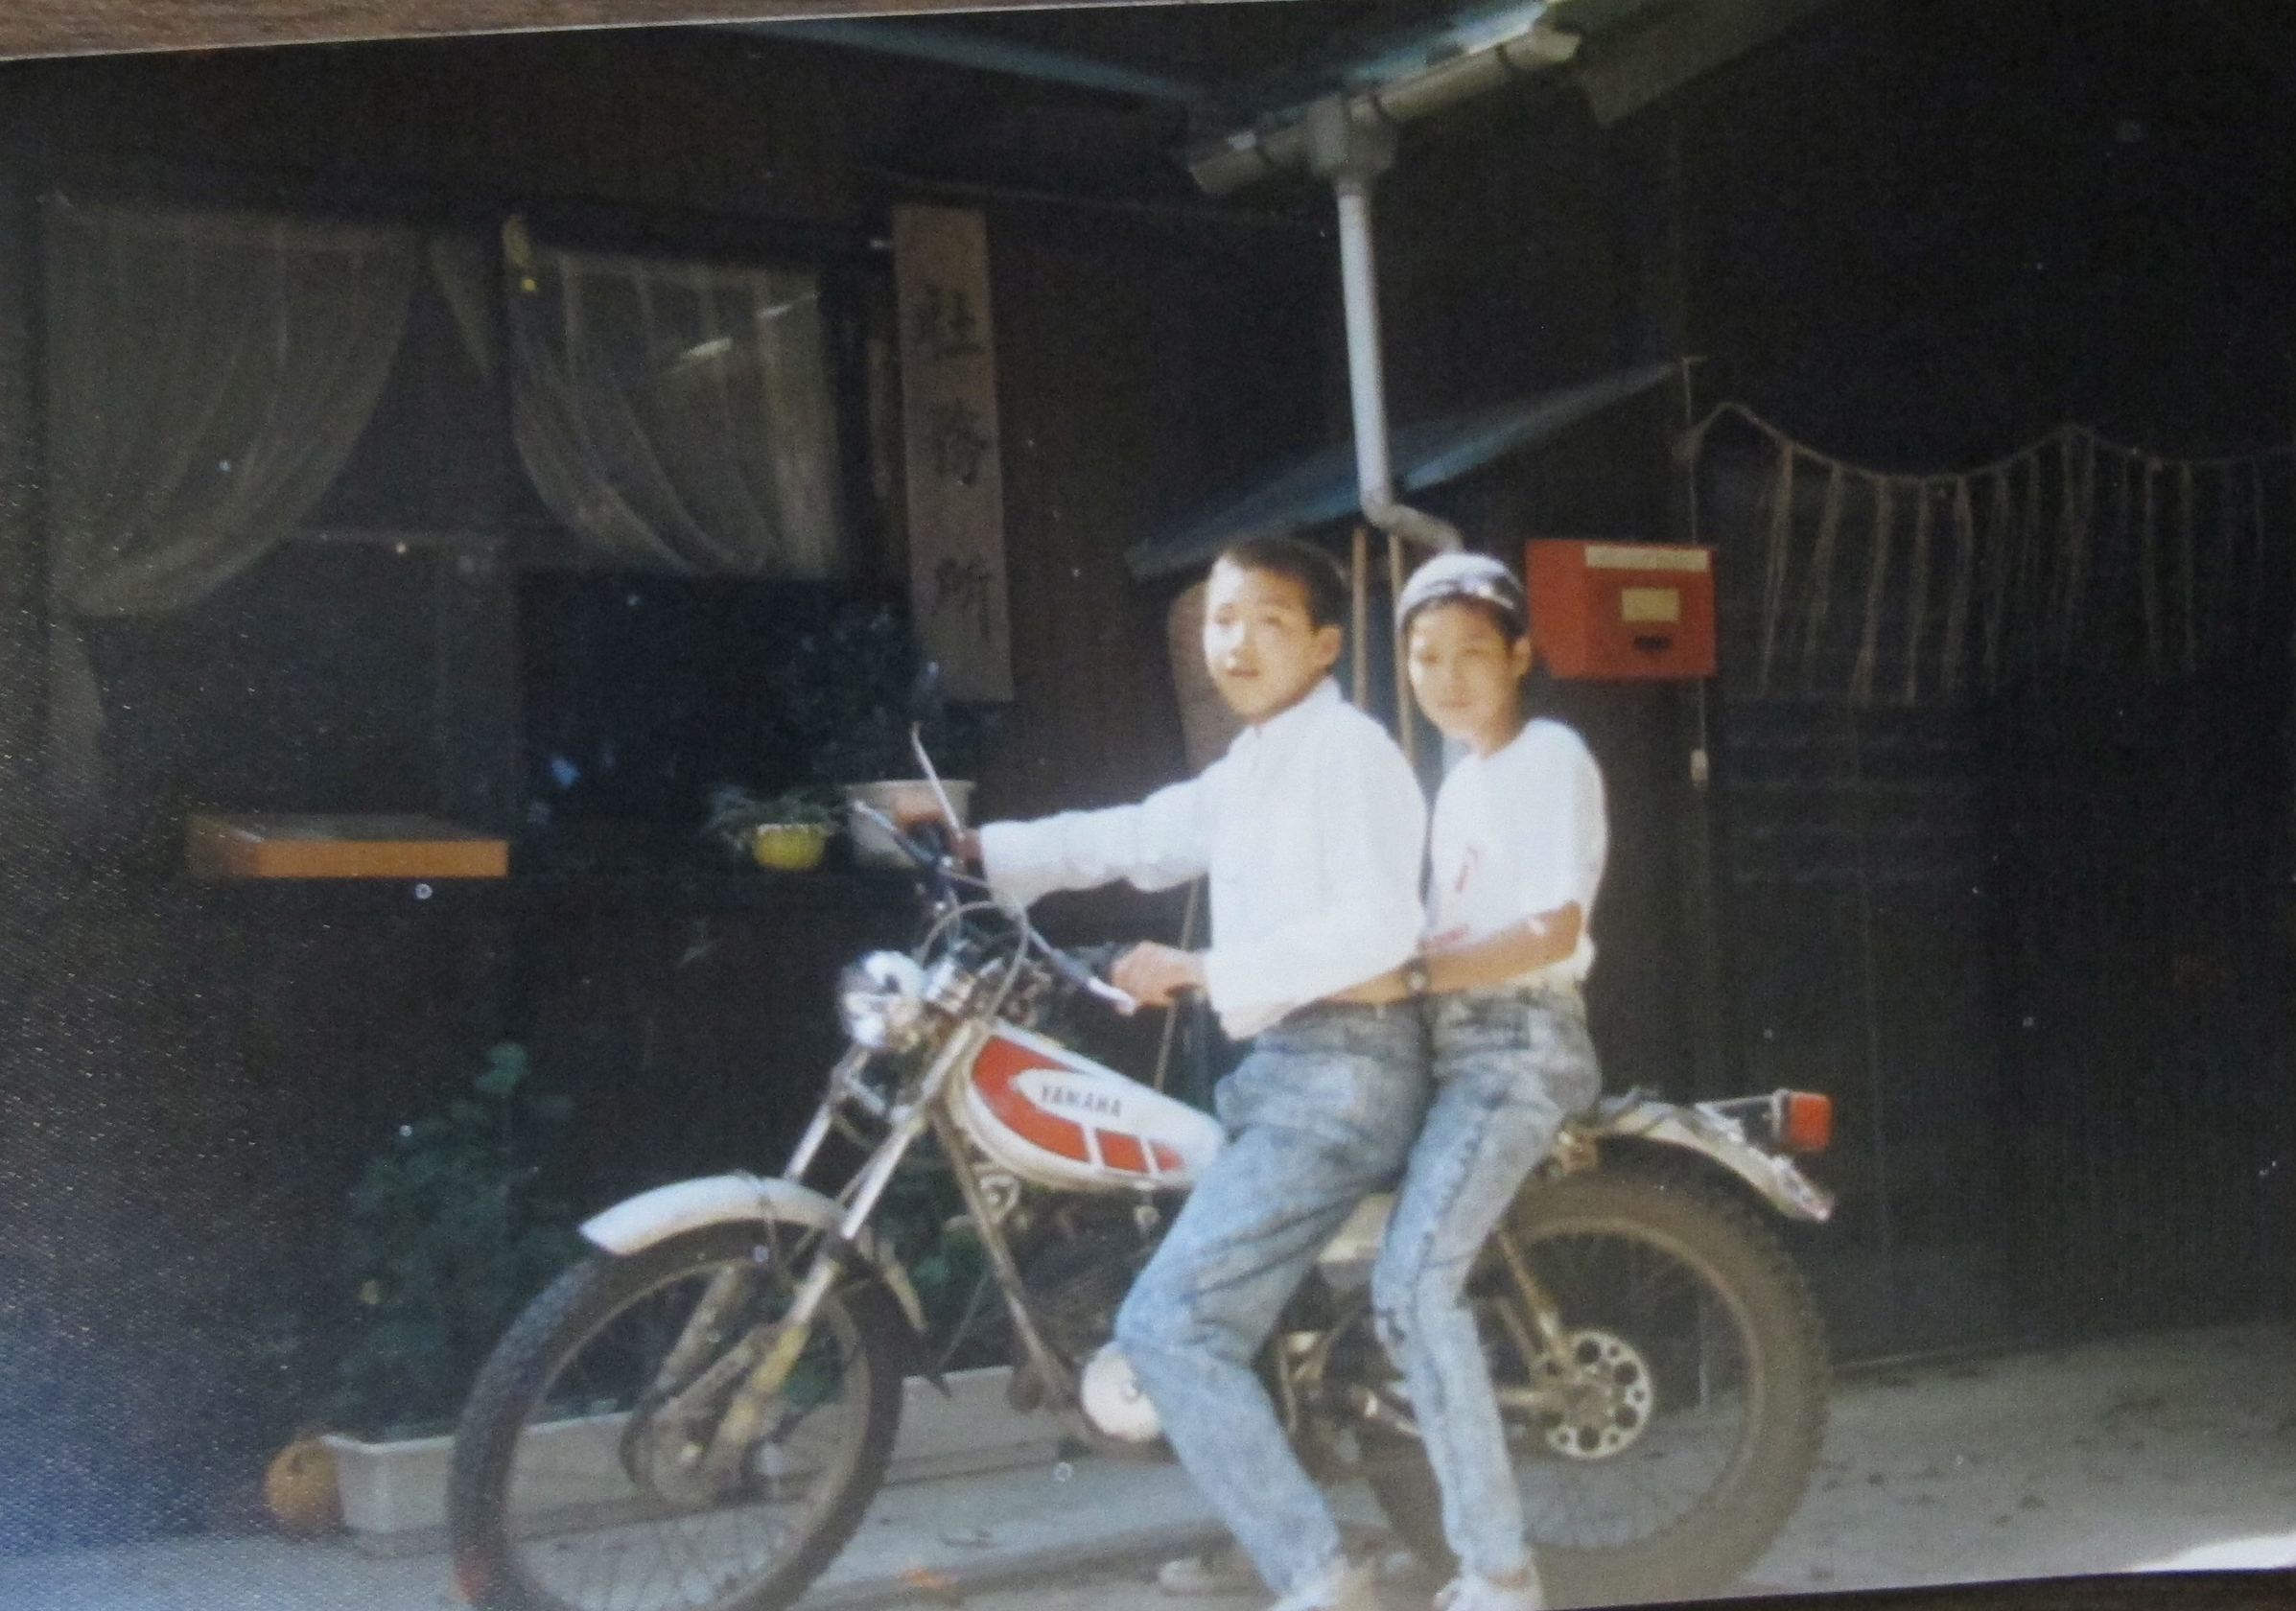 keino and his brother Rintaro on their first motorcycle